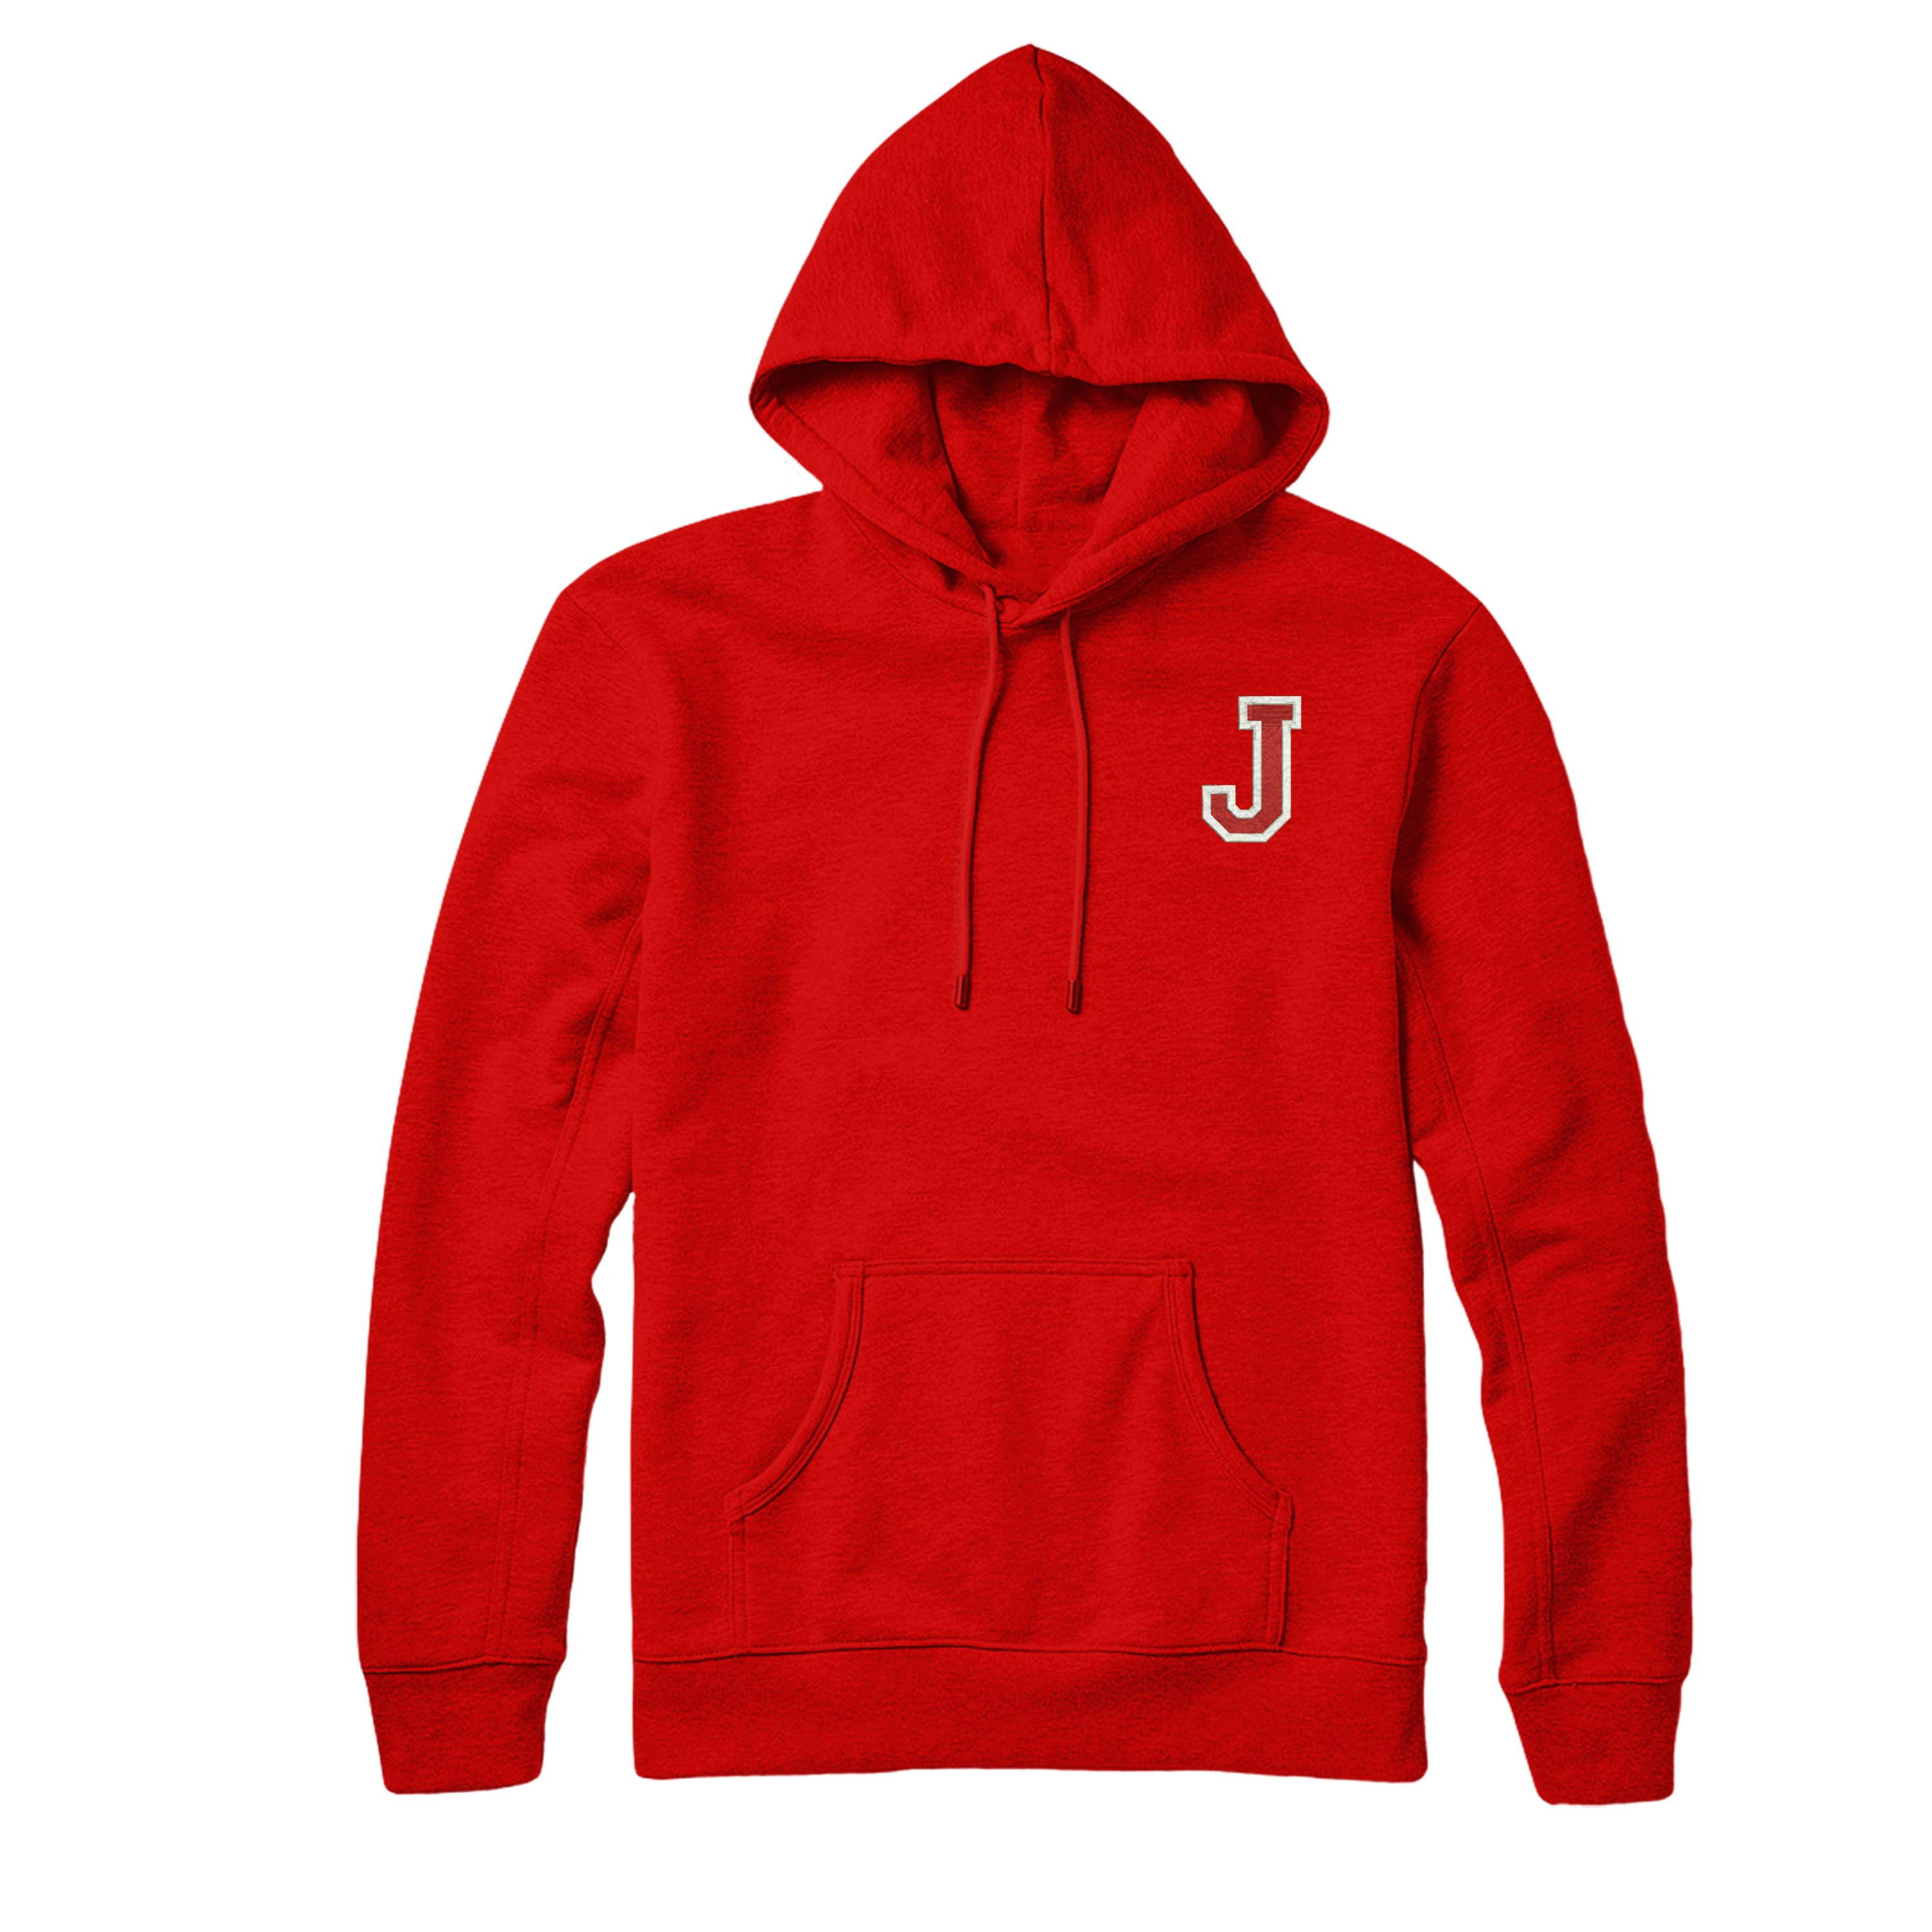 Letter-J-Hoodie-Birthday-Gift-Alphabet-Hiphop-Style-Embroidered-Hoodie-Top